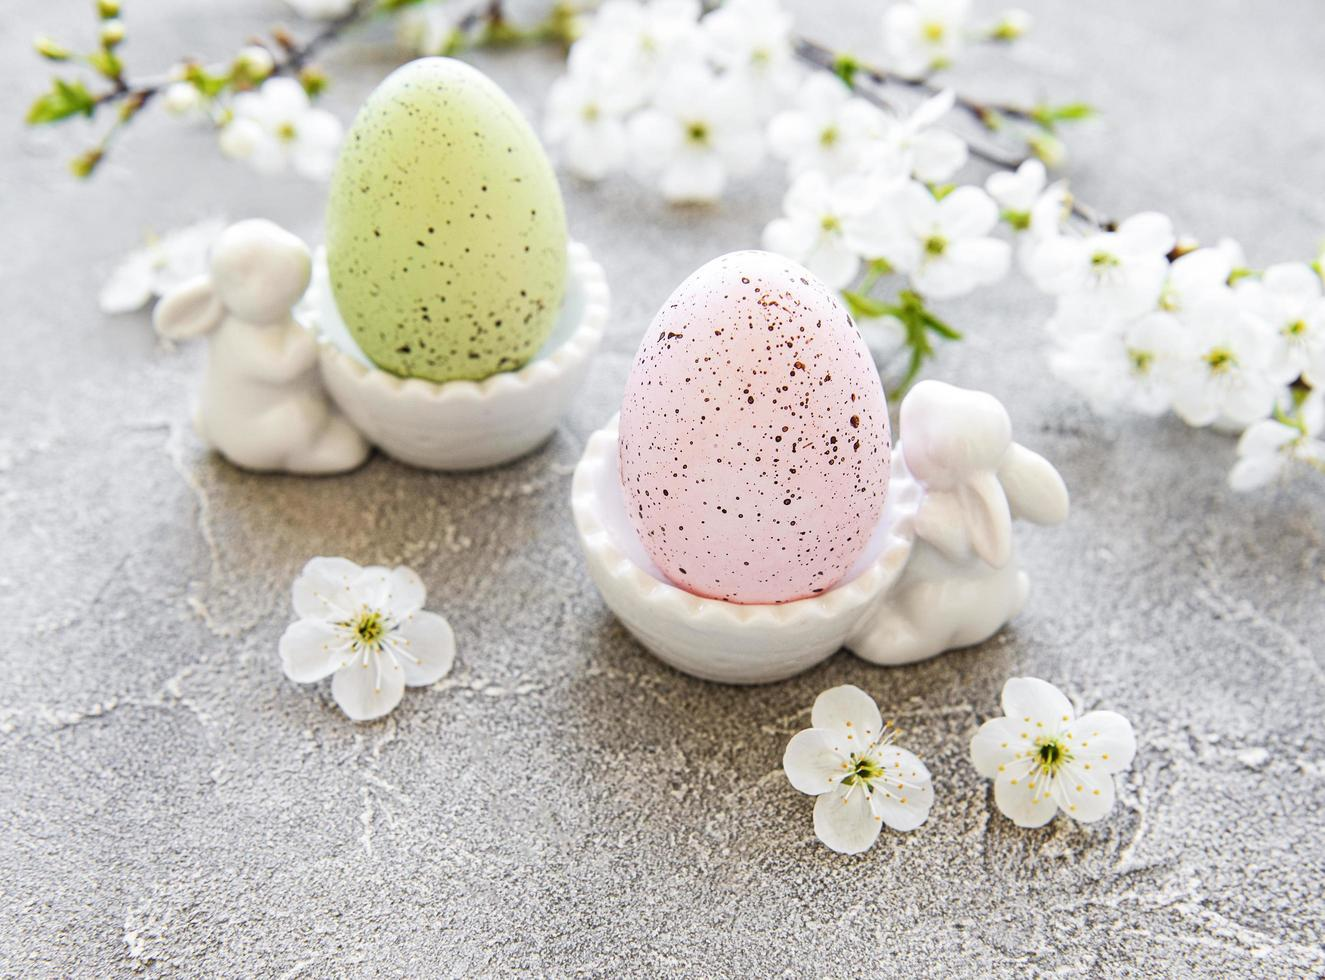 Colorful Easter eggs in a stand with ceramic Easter bunny figurines and spring blossom on gray concrete background photo